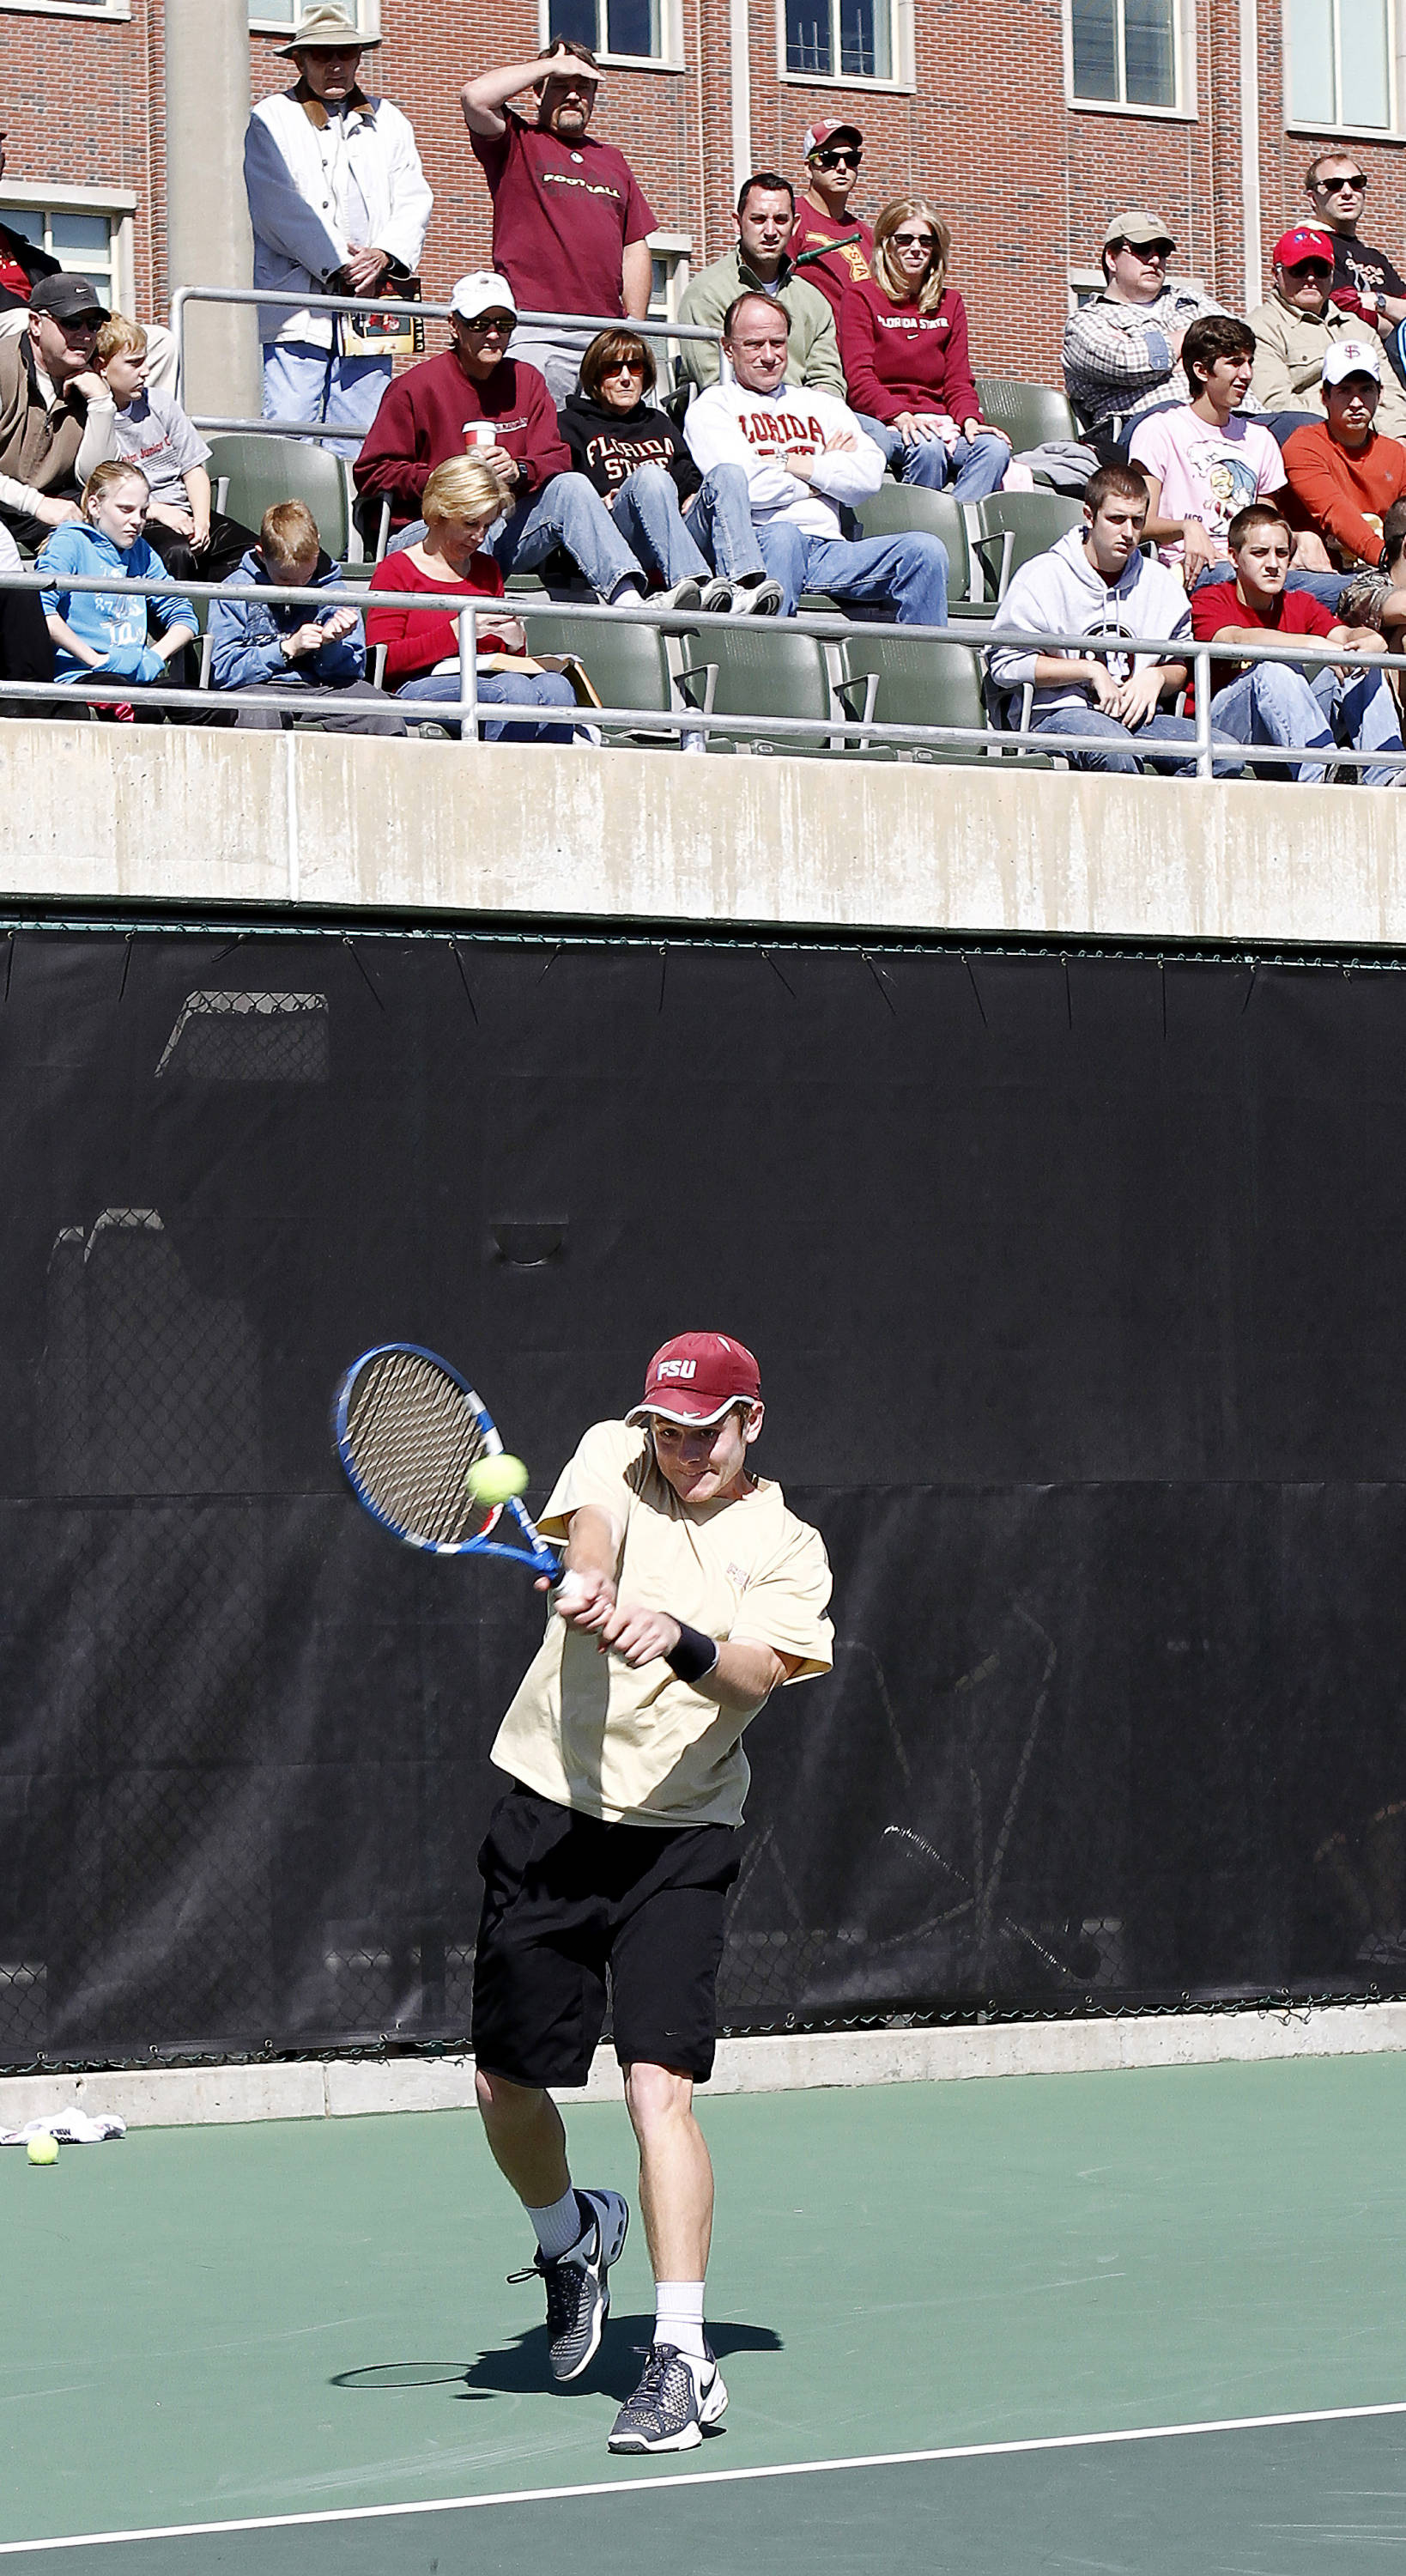 FSU vs Florida- 02//06/11 - Clint Bowles